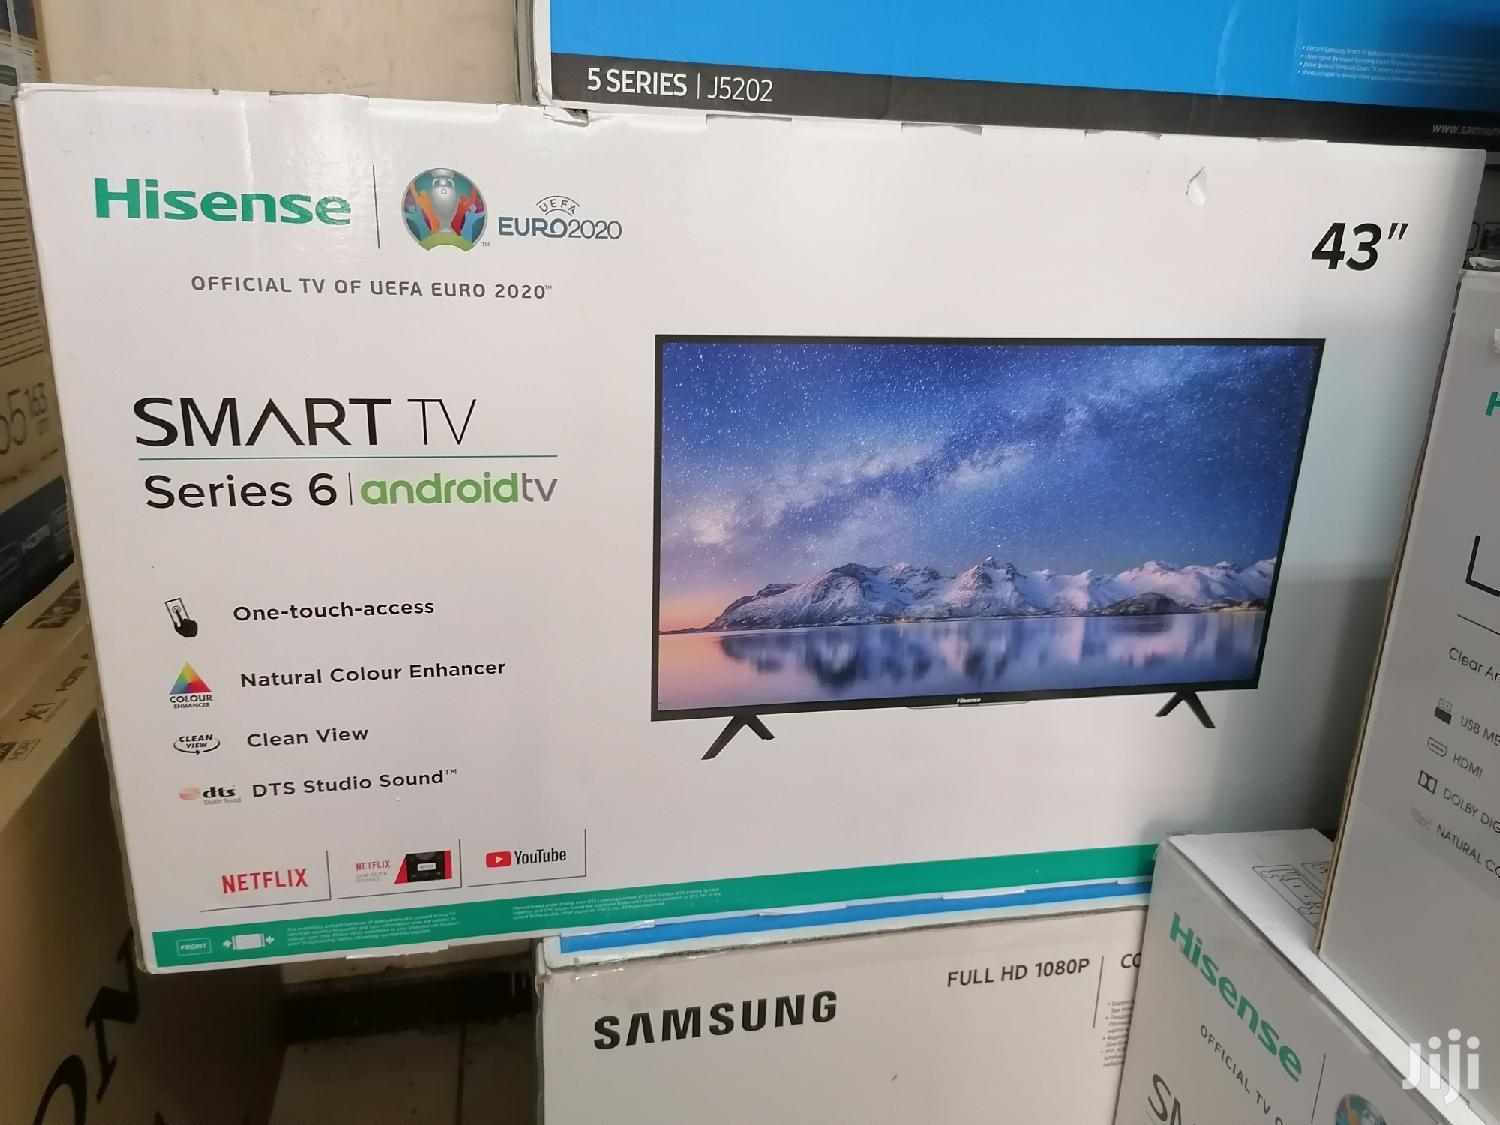 Brand New Hisense Smart Android Series 6 Tv 43 Inch